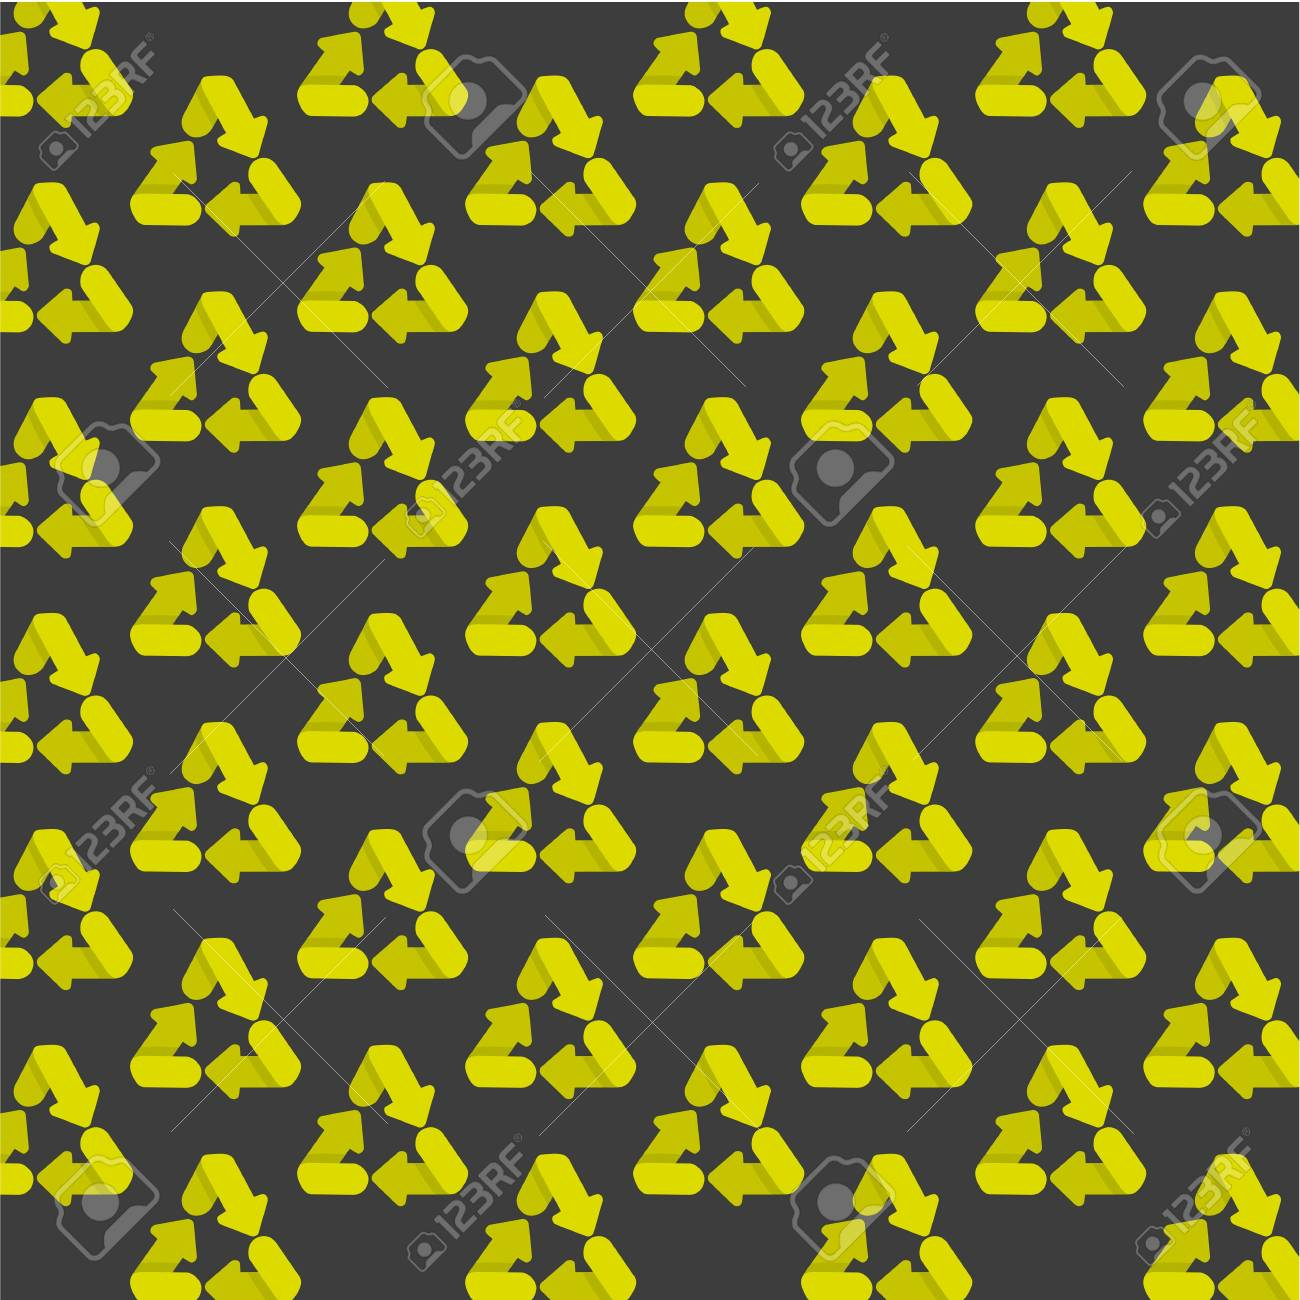 pattern of recycling icons, isolated on gray background. Stock Vector - 13142151